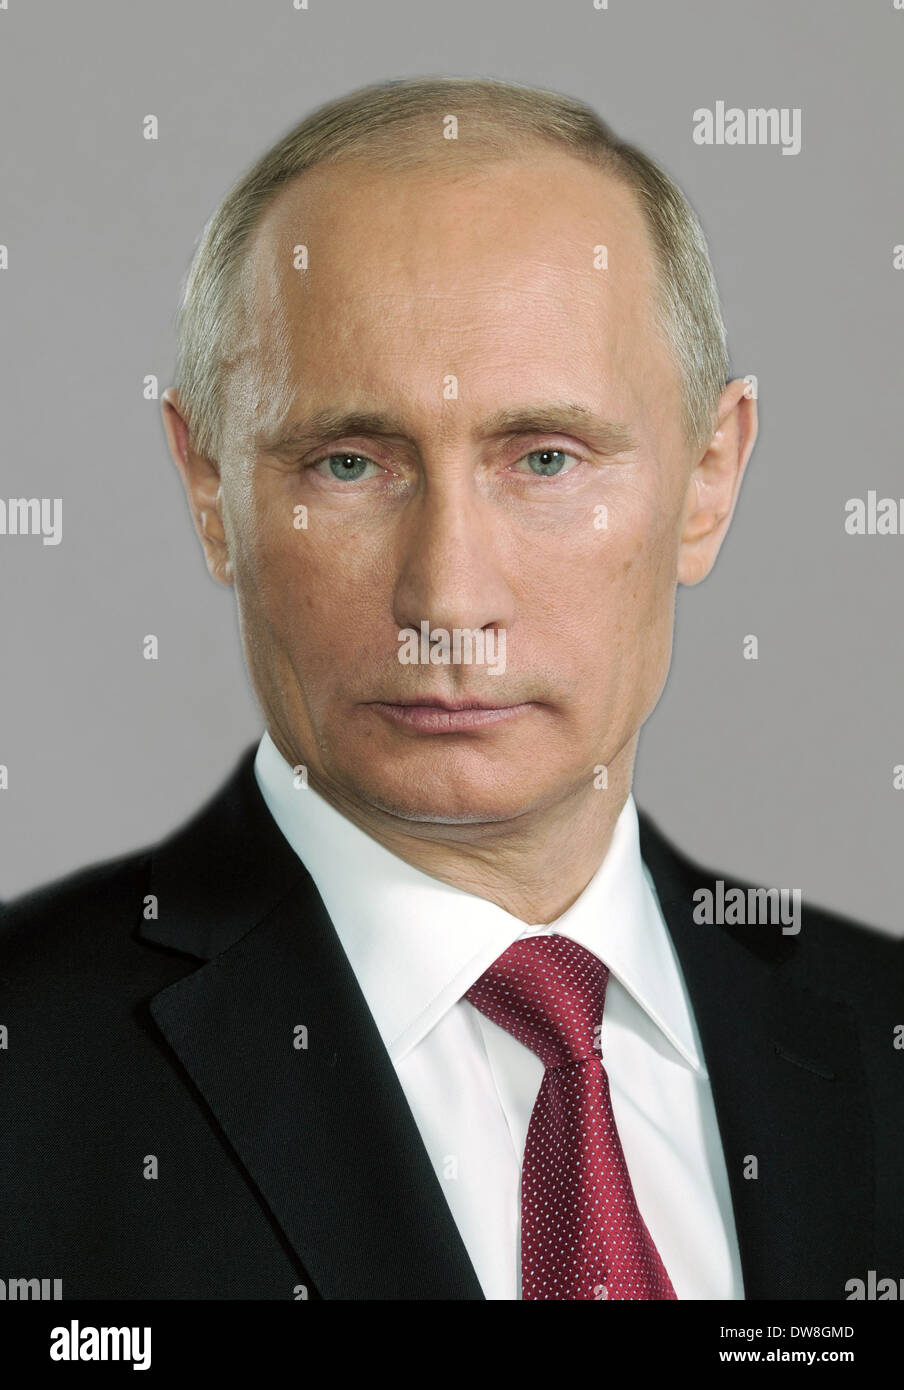 VLADIMIR PUTIN  as President of Russia - Stock Image